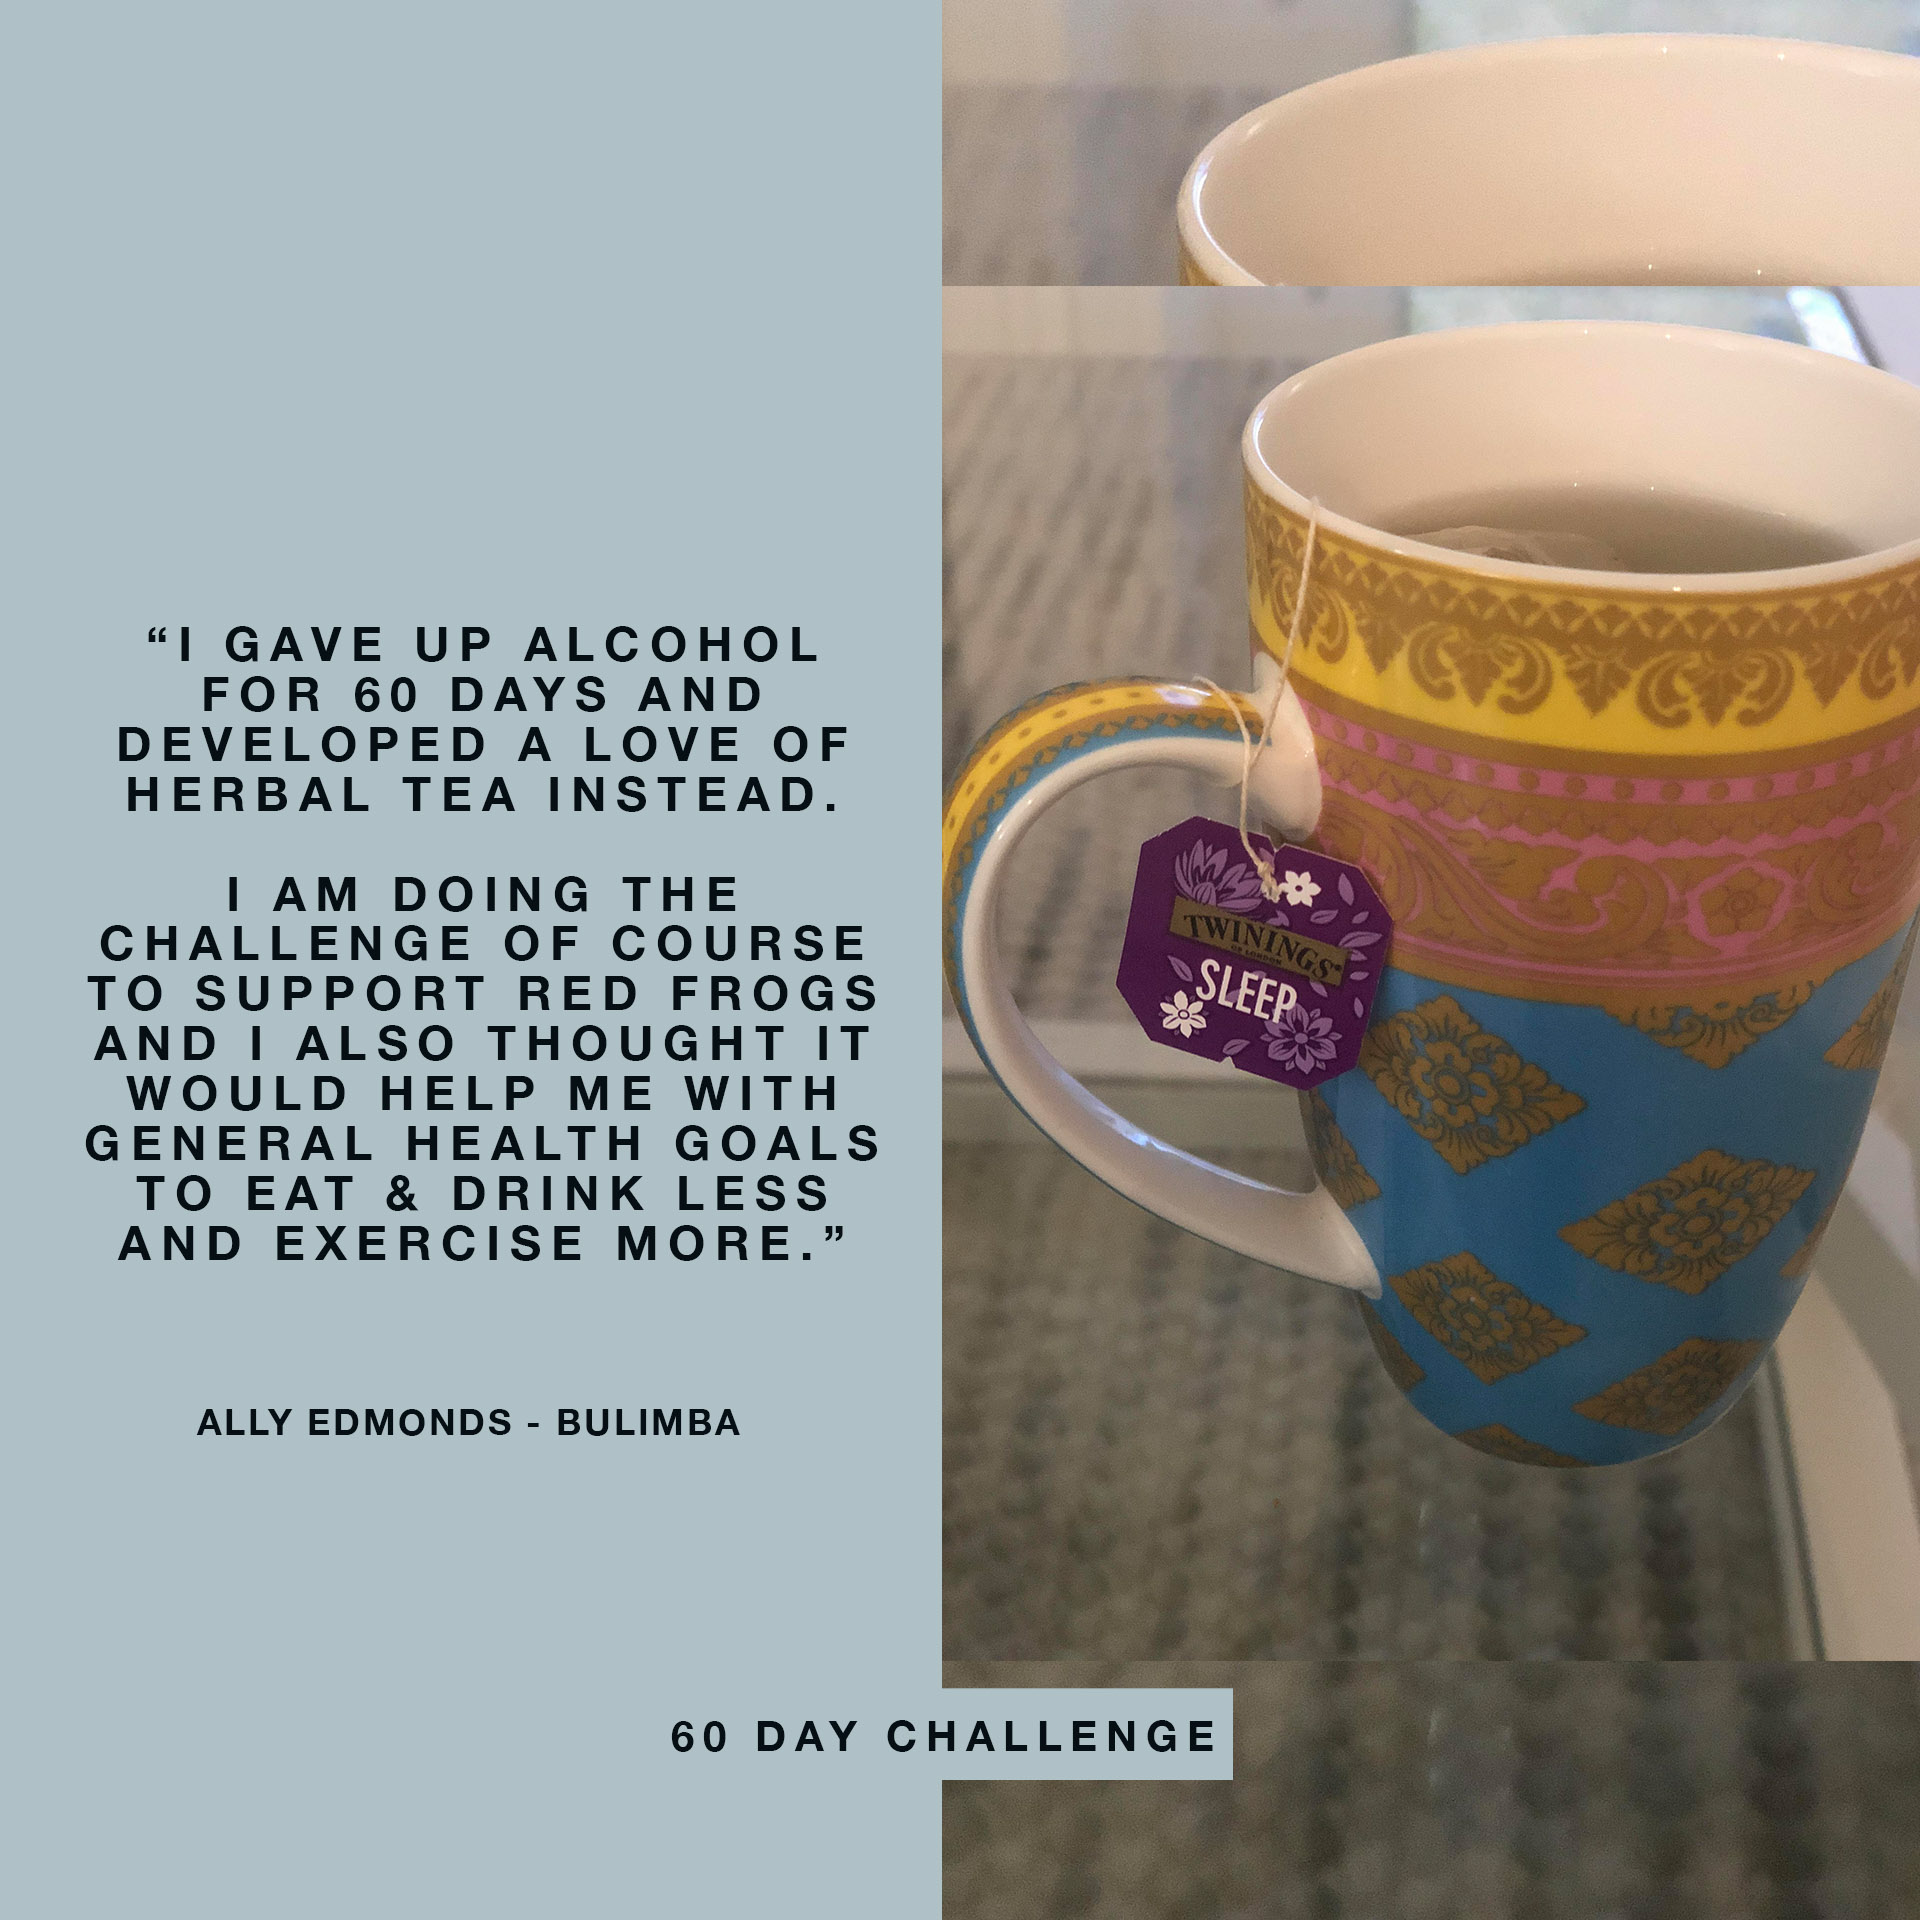 60 Day Challenge Pledge by Ally Edmonds